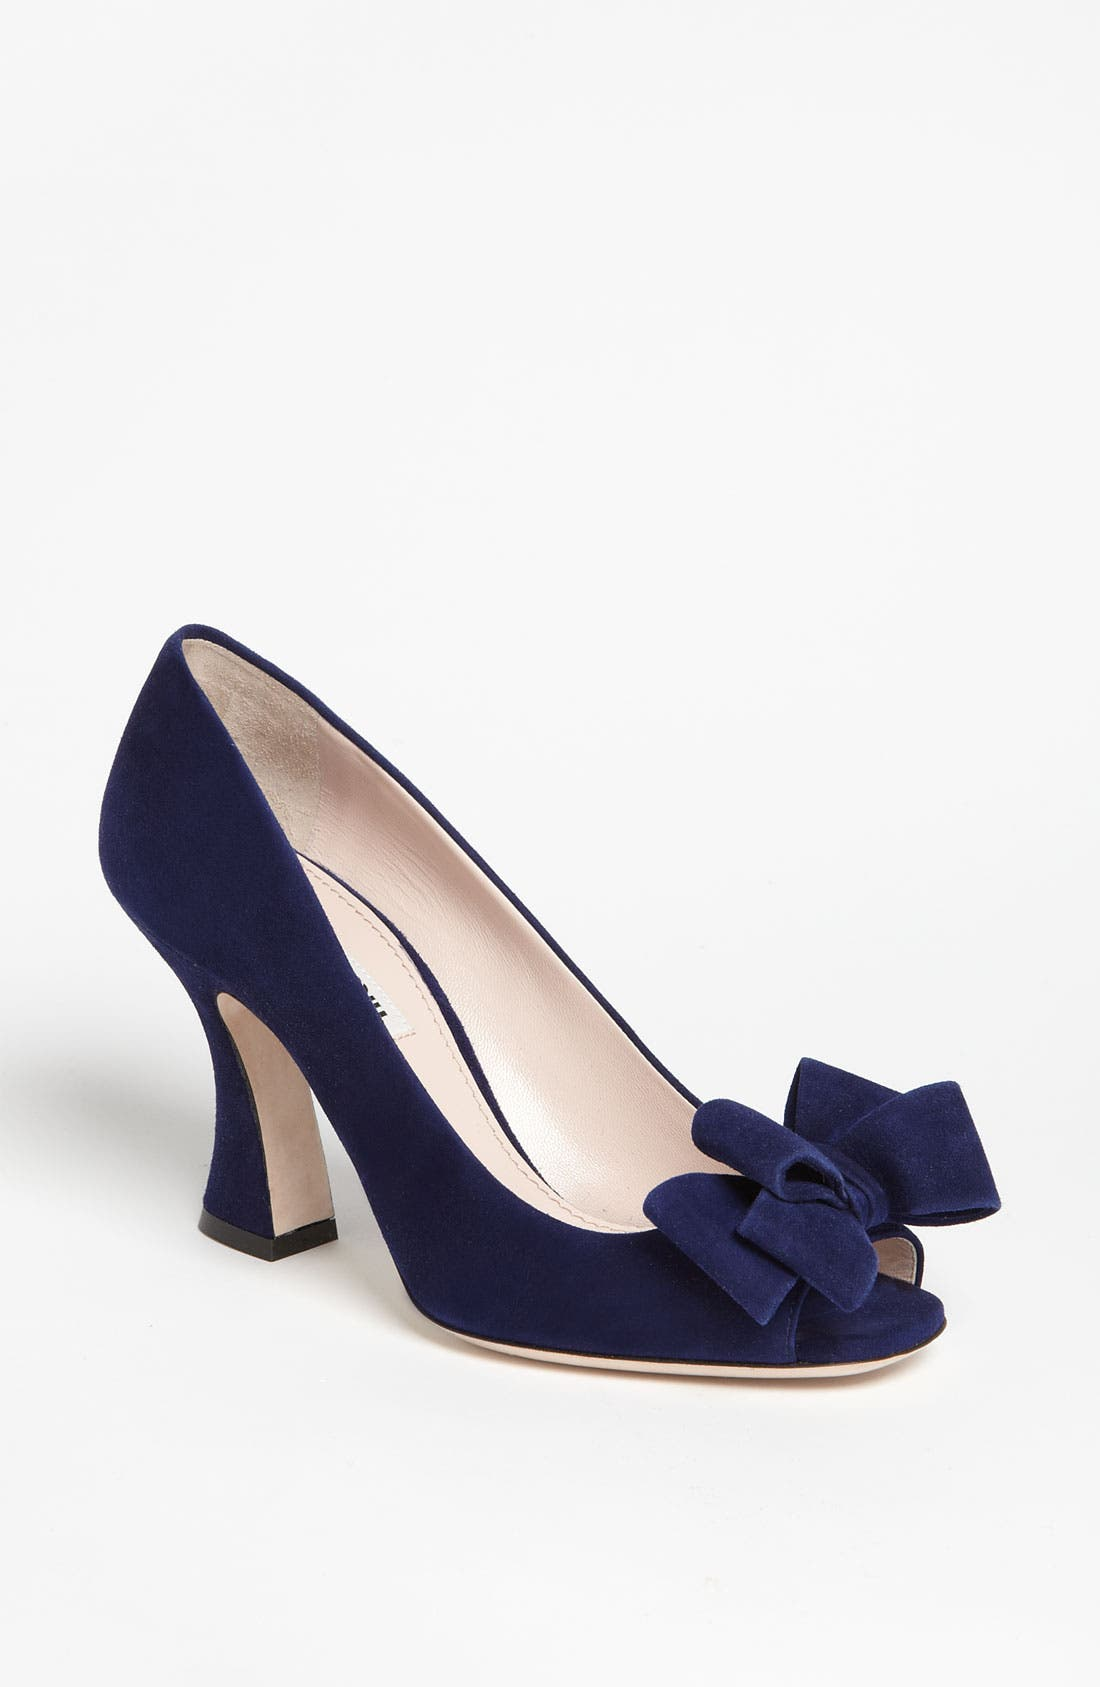 Main Image - Miu Miu Bow Pump